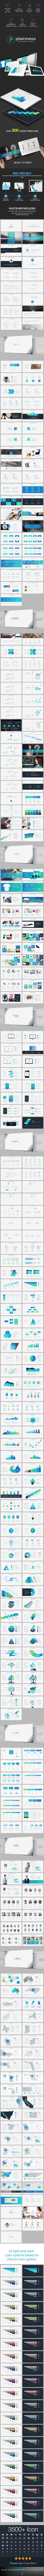 plainness- Premium and Easy to Edit Template  #powerpoint • Only available here ➝ https://graphicriver.net/item/plainness-premium-and-easy-to-edit-template/17709469?ref=pxcr